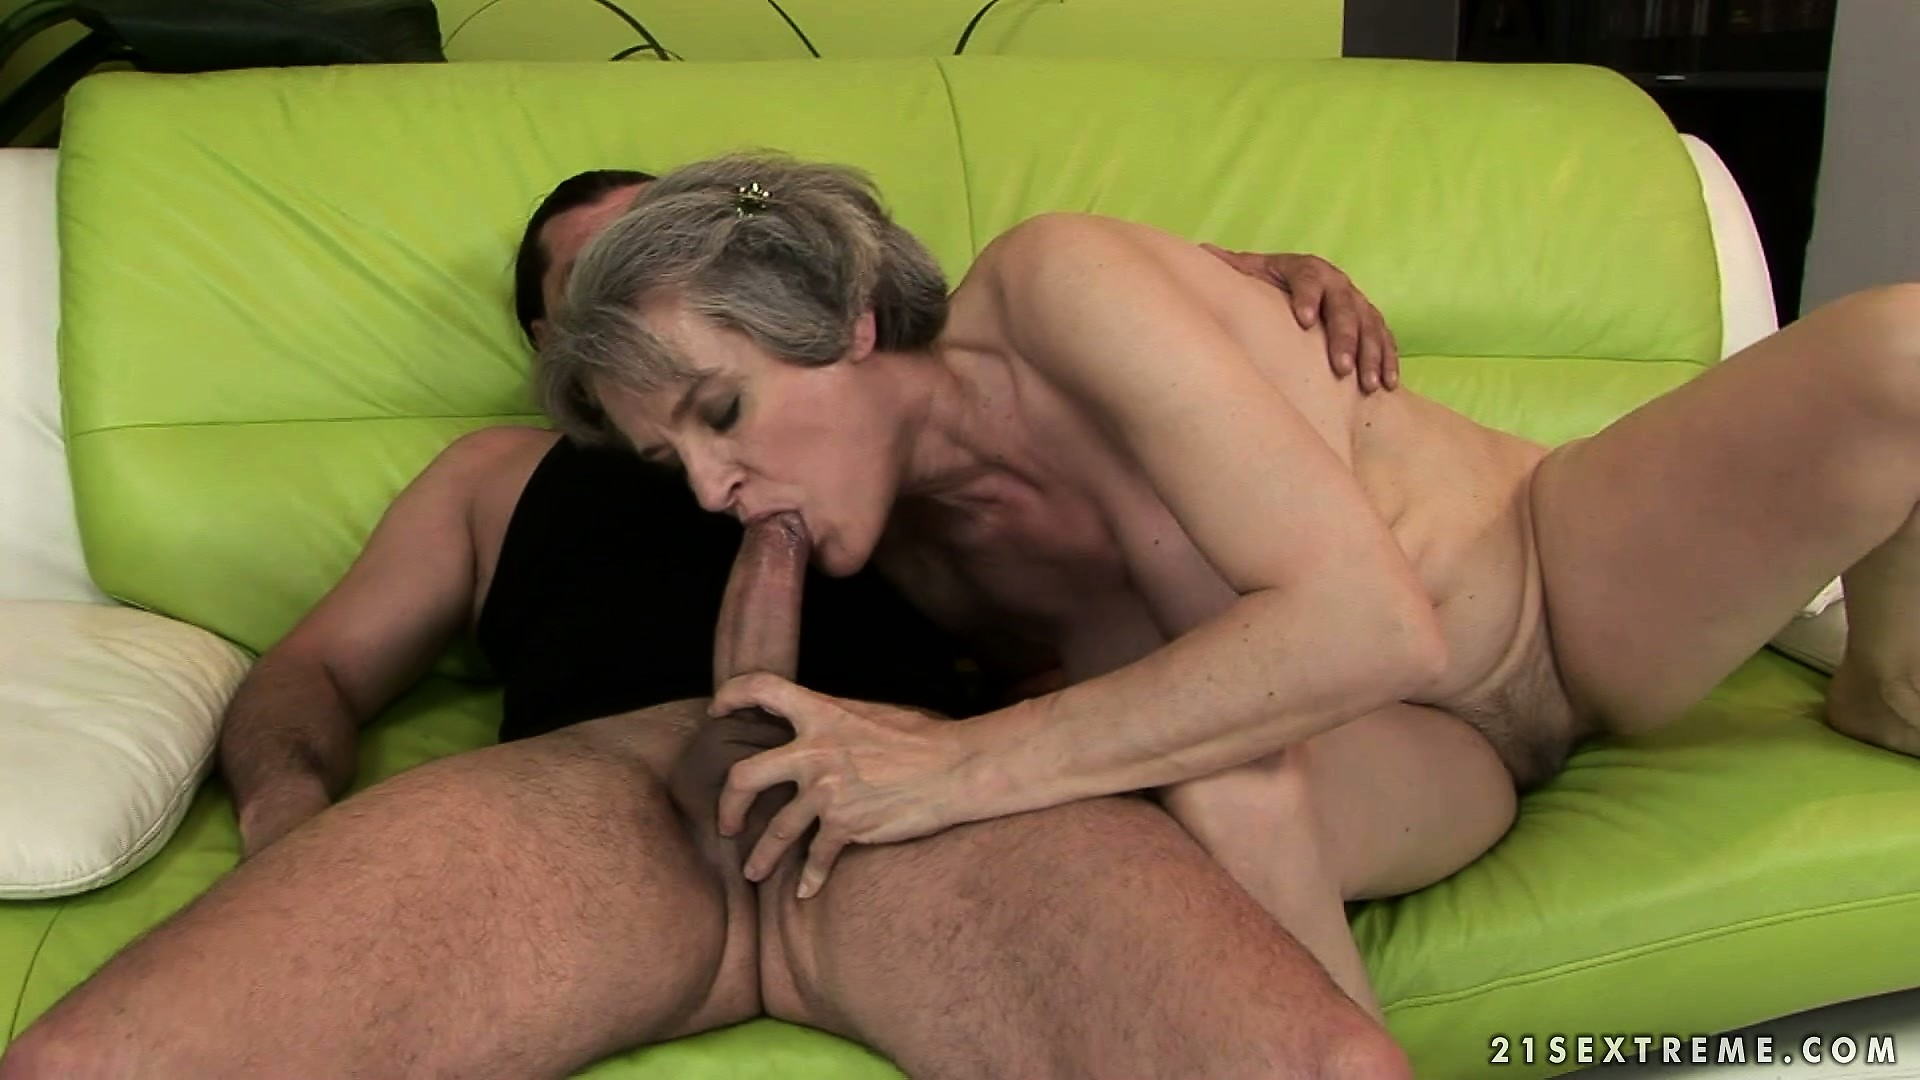 Porn Tube of Plumper Granny, Aliz, Bounces Her Big Saggy Tits As She Rides His Cock In Her Hairy Bush